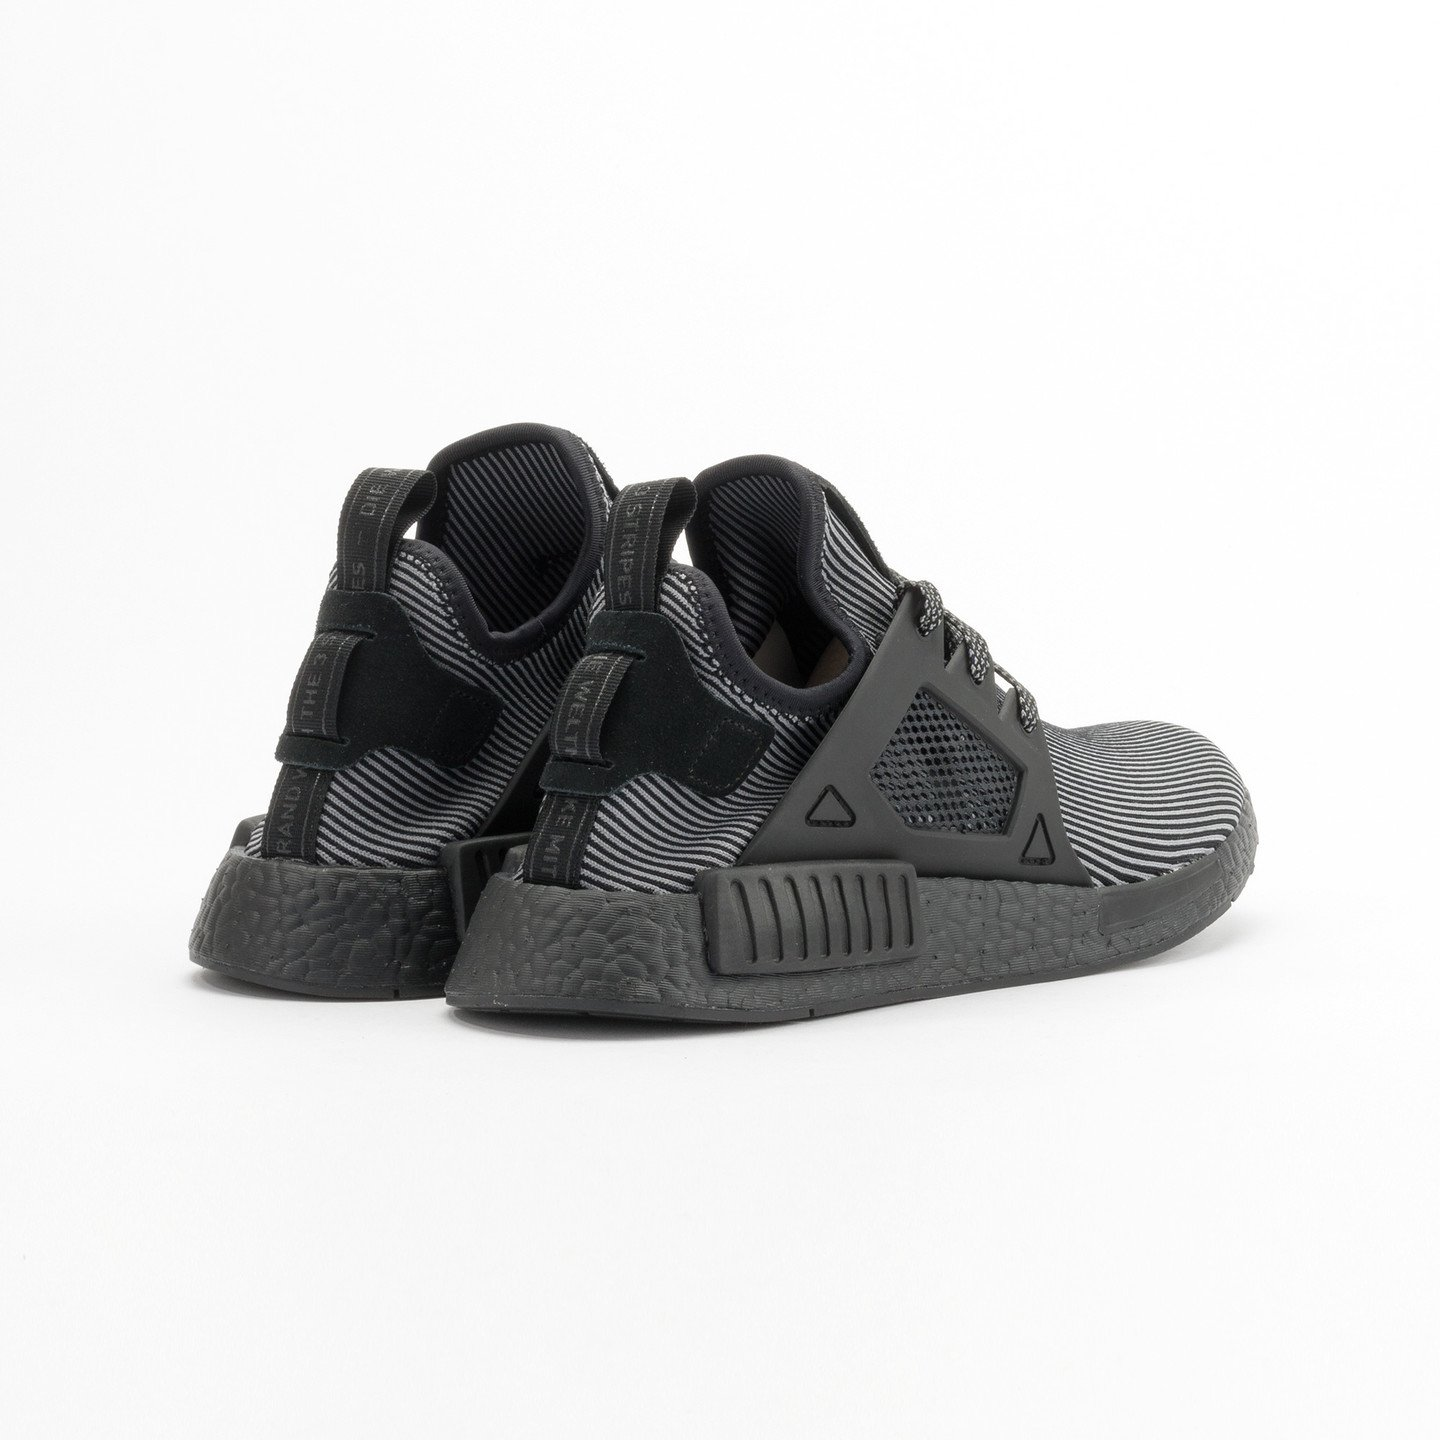 Adidas NMD XR1 Primeknit Core Black / Core Black / Running White S32211-42